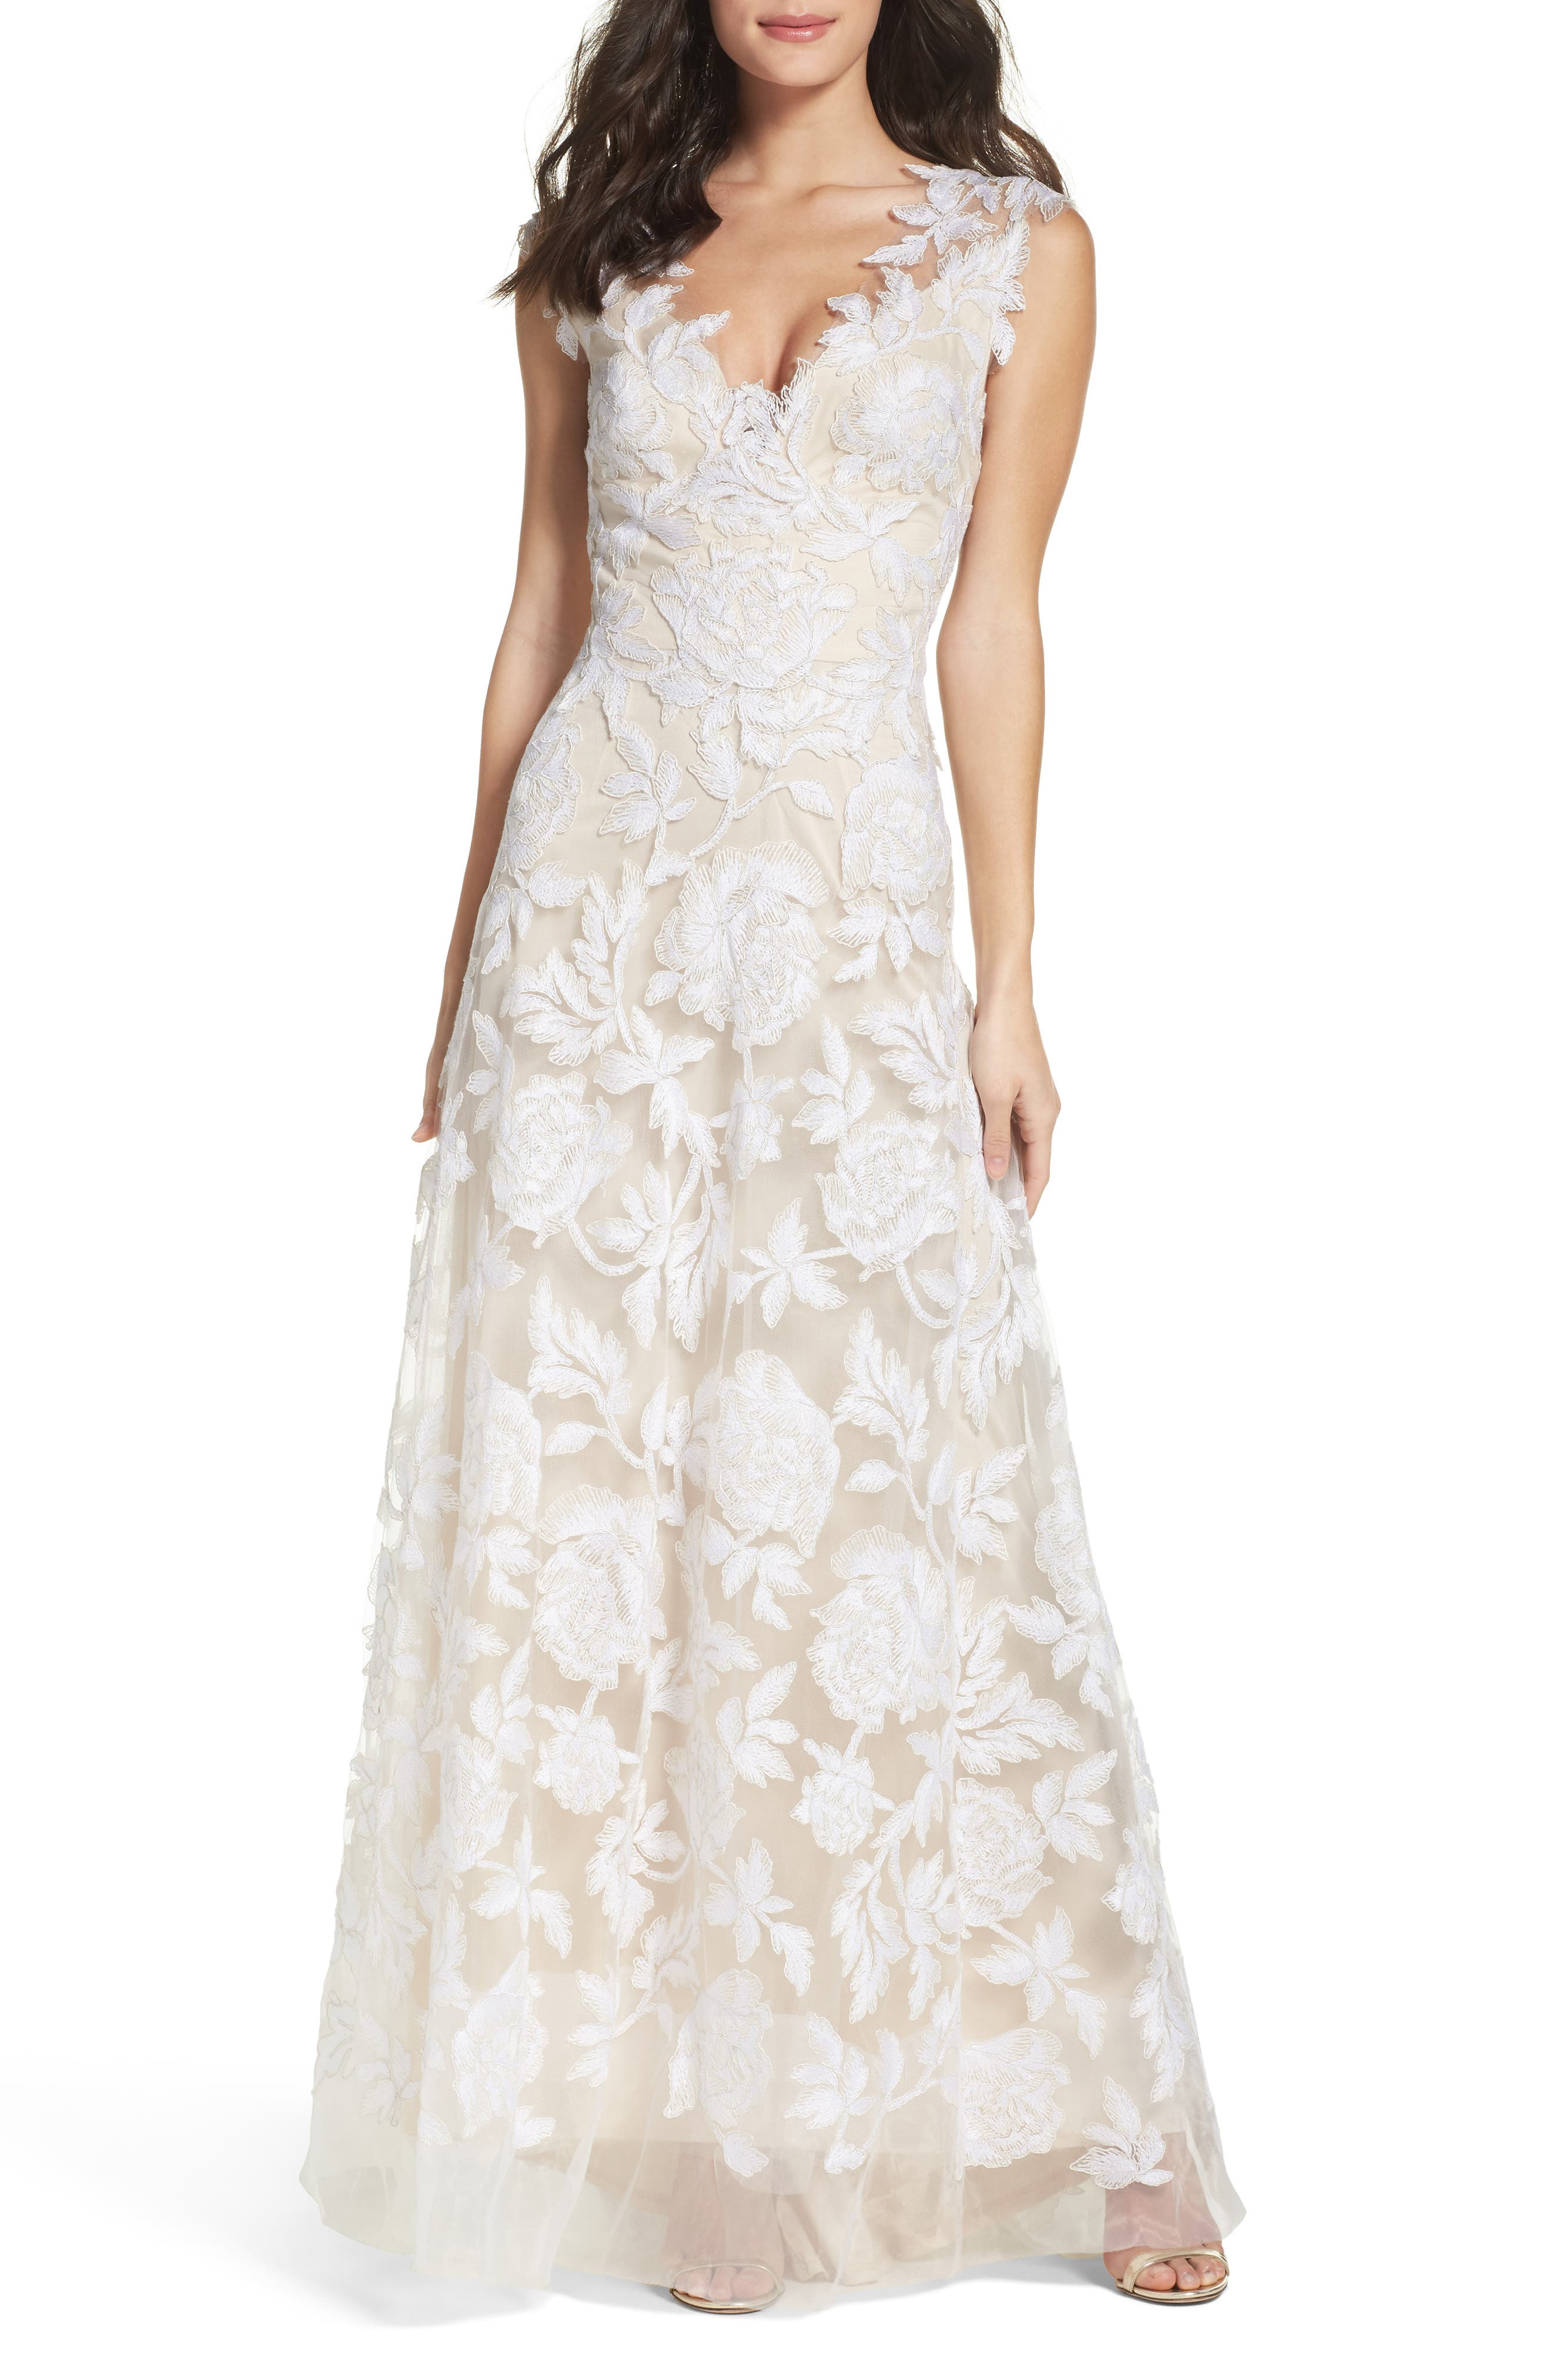 Vintage Inspired Wedding Dress | Vintage Style Wedding Dresses Womens Tadashi Shoji A-Line Lace Gown Size 8 - Ivory $998.00 AT vintagedancer.com